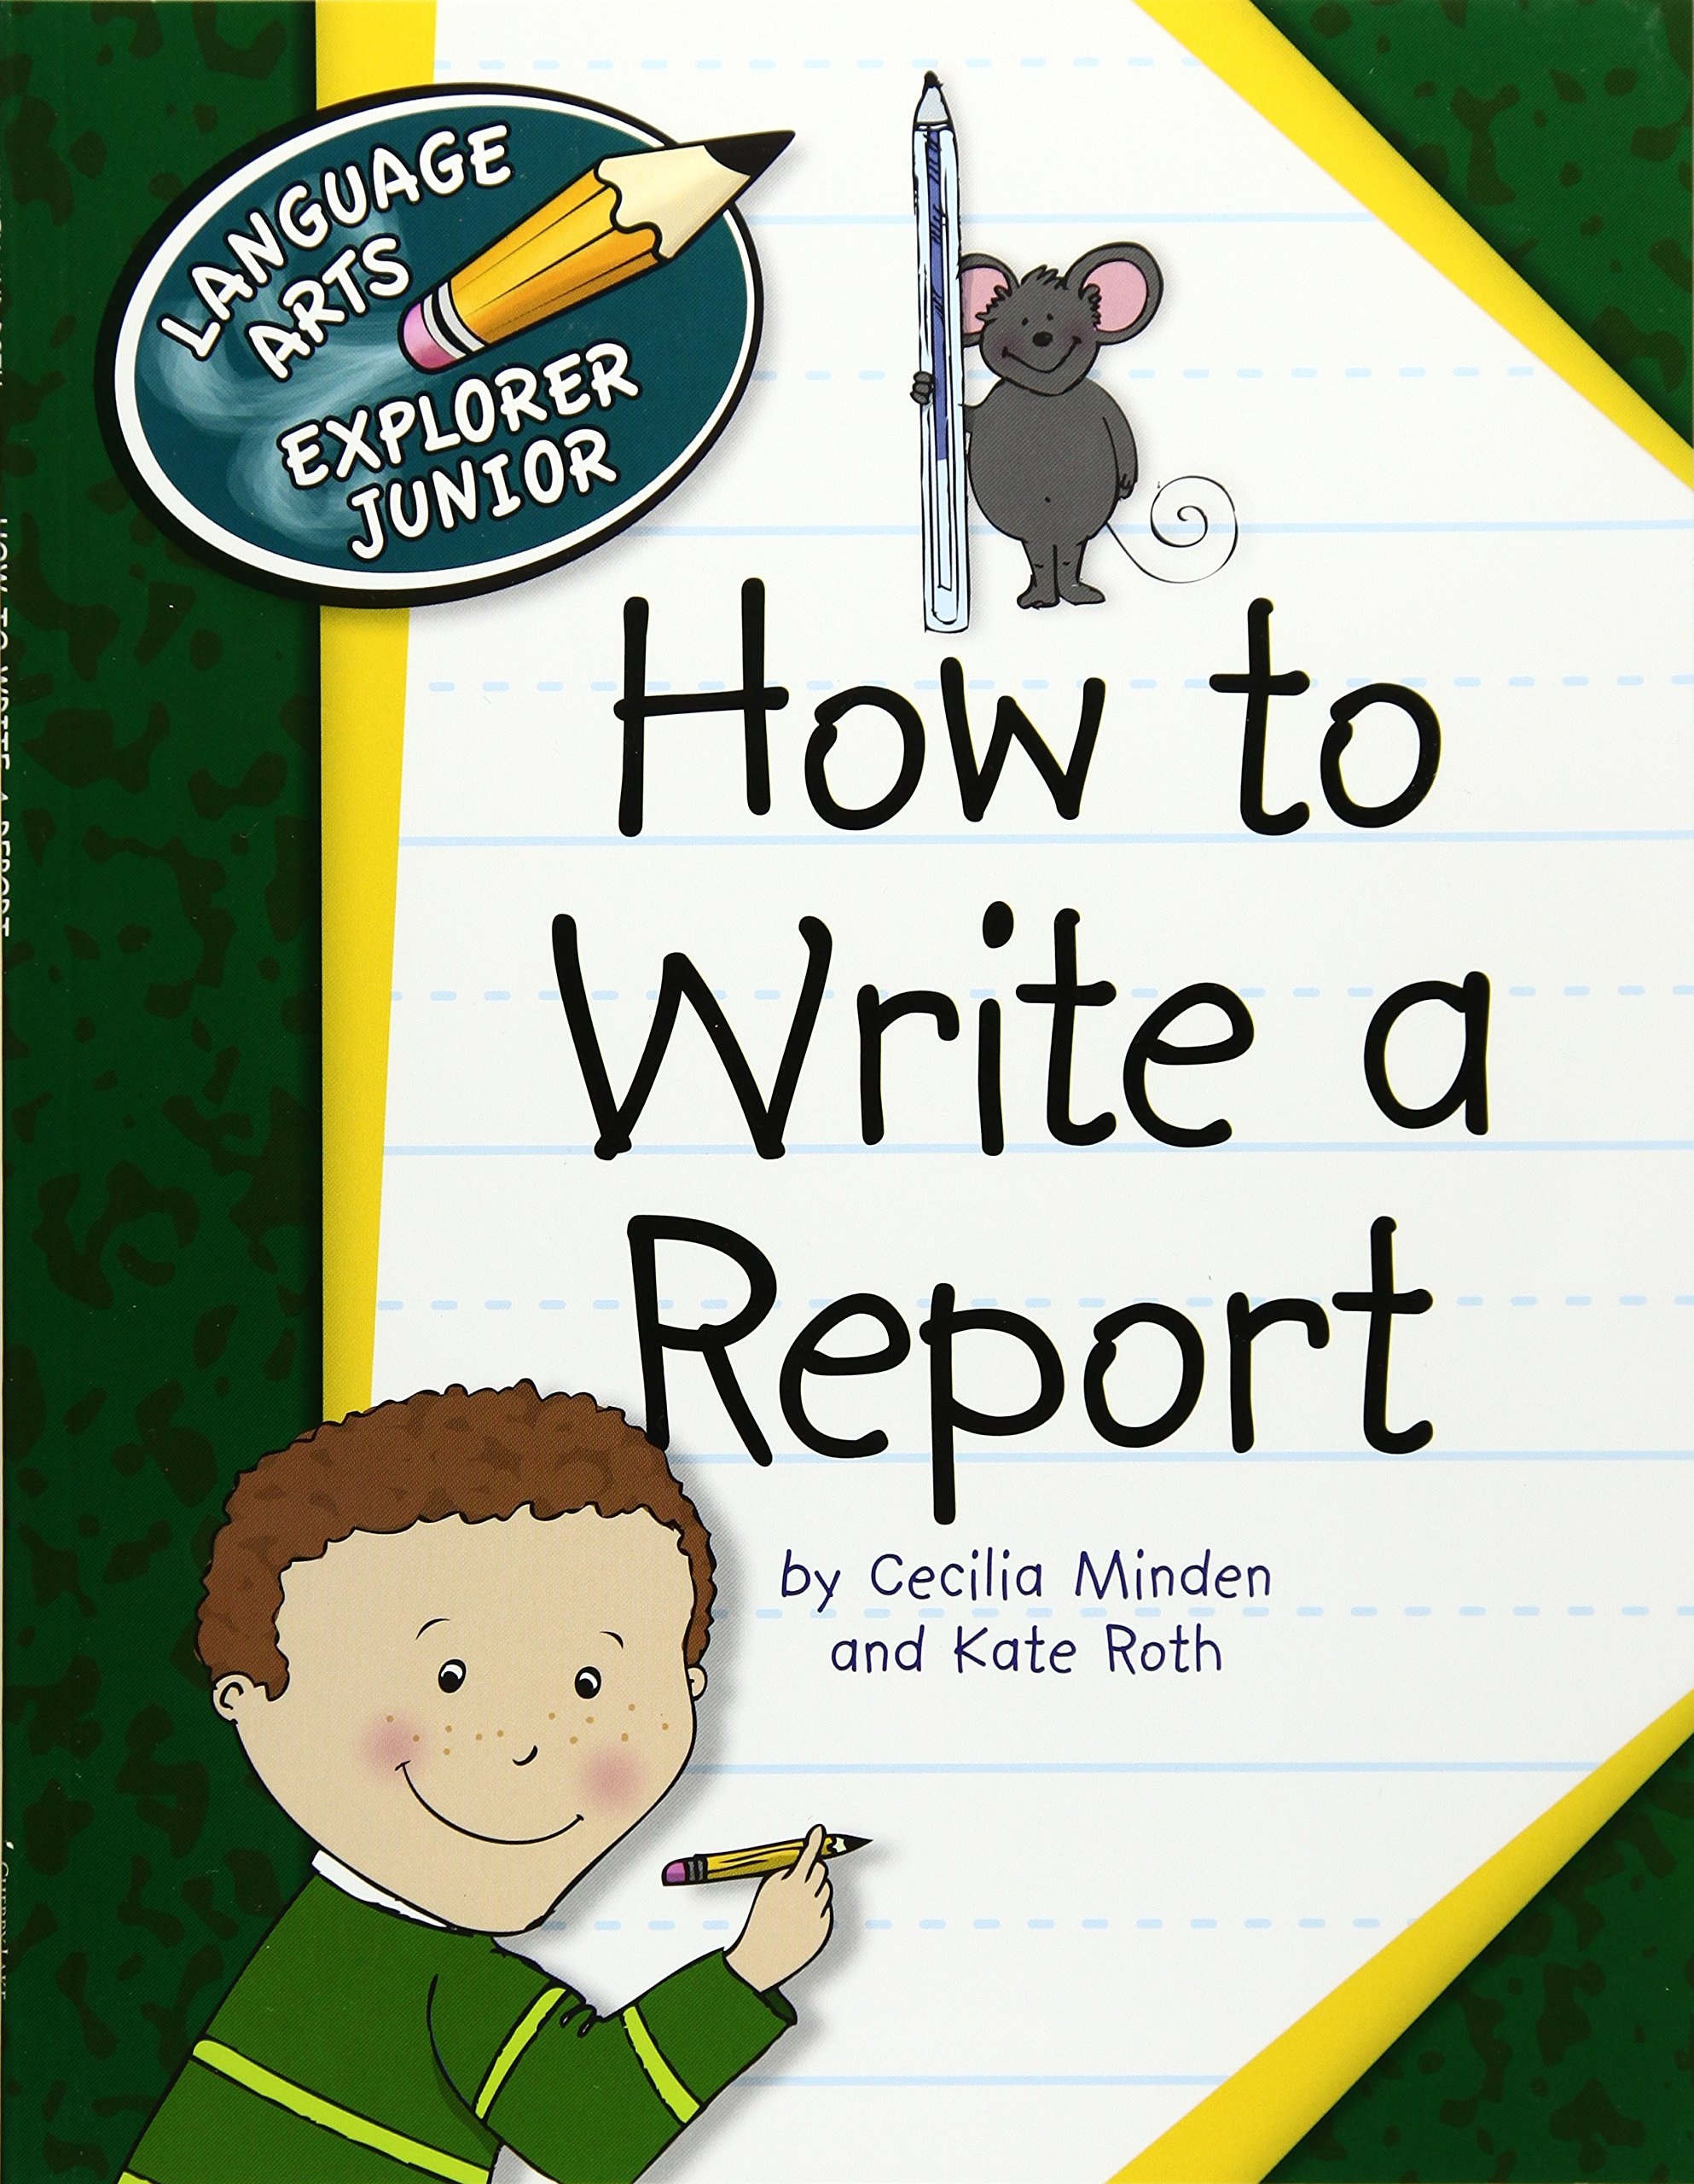 How to Write a Report (Language Arts Explorer Junior) pdf